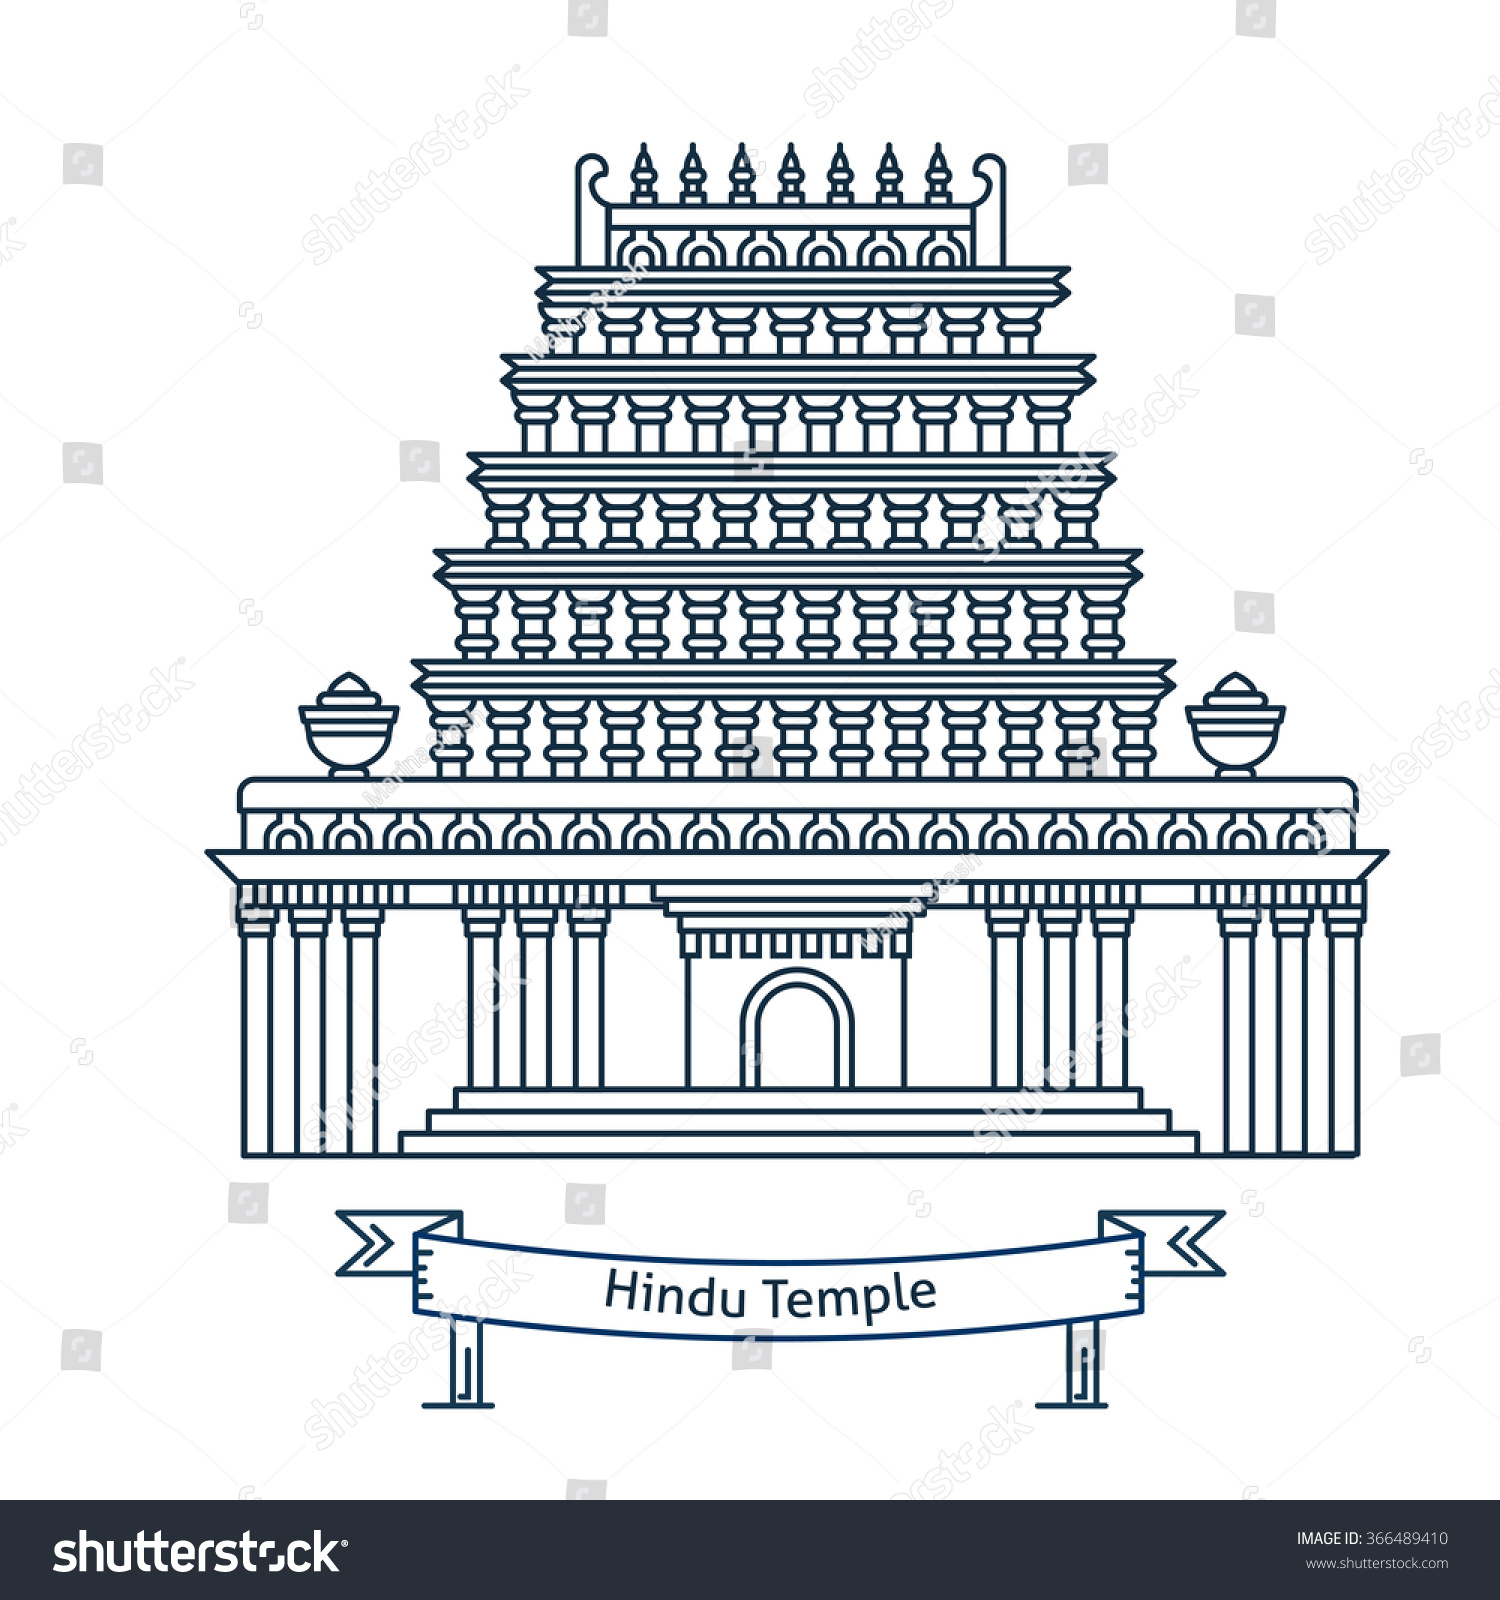 Hindu temple hinduism symbol indian temple stock vector 366489410 hindu temple hinduism symbol indian temple flat line vector architecture illustration outlined biocorpaavc Gallery